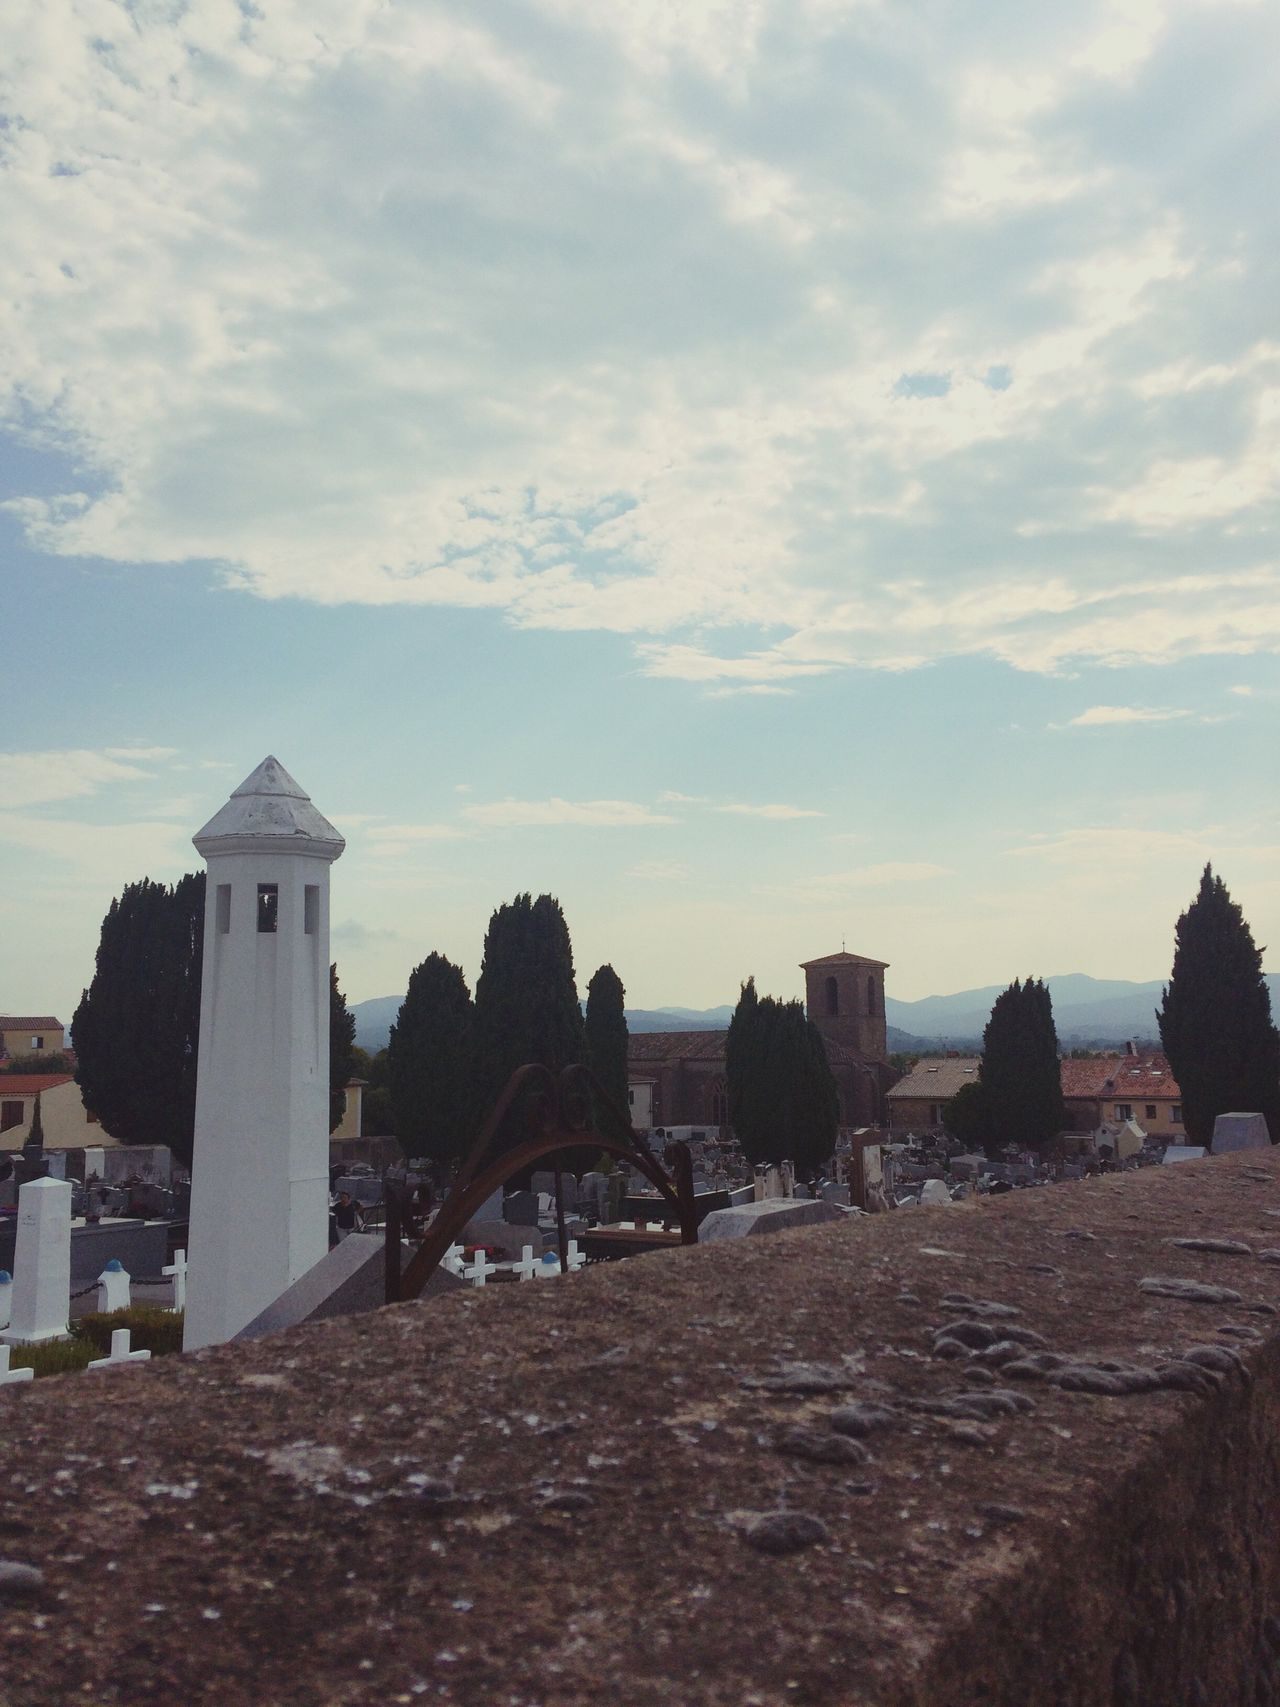 France Outdoors Explore Cemetery Frejus Trip Traveling Architecture Day No People First Eyeem Photo